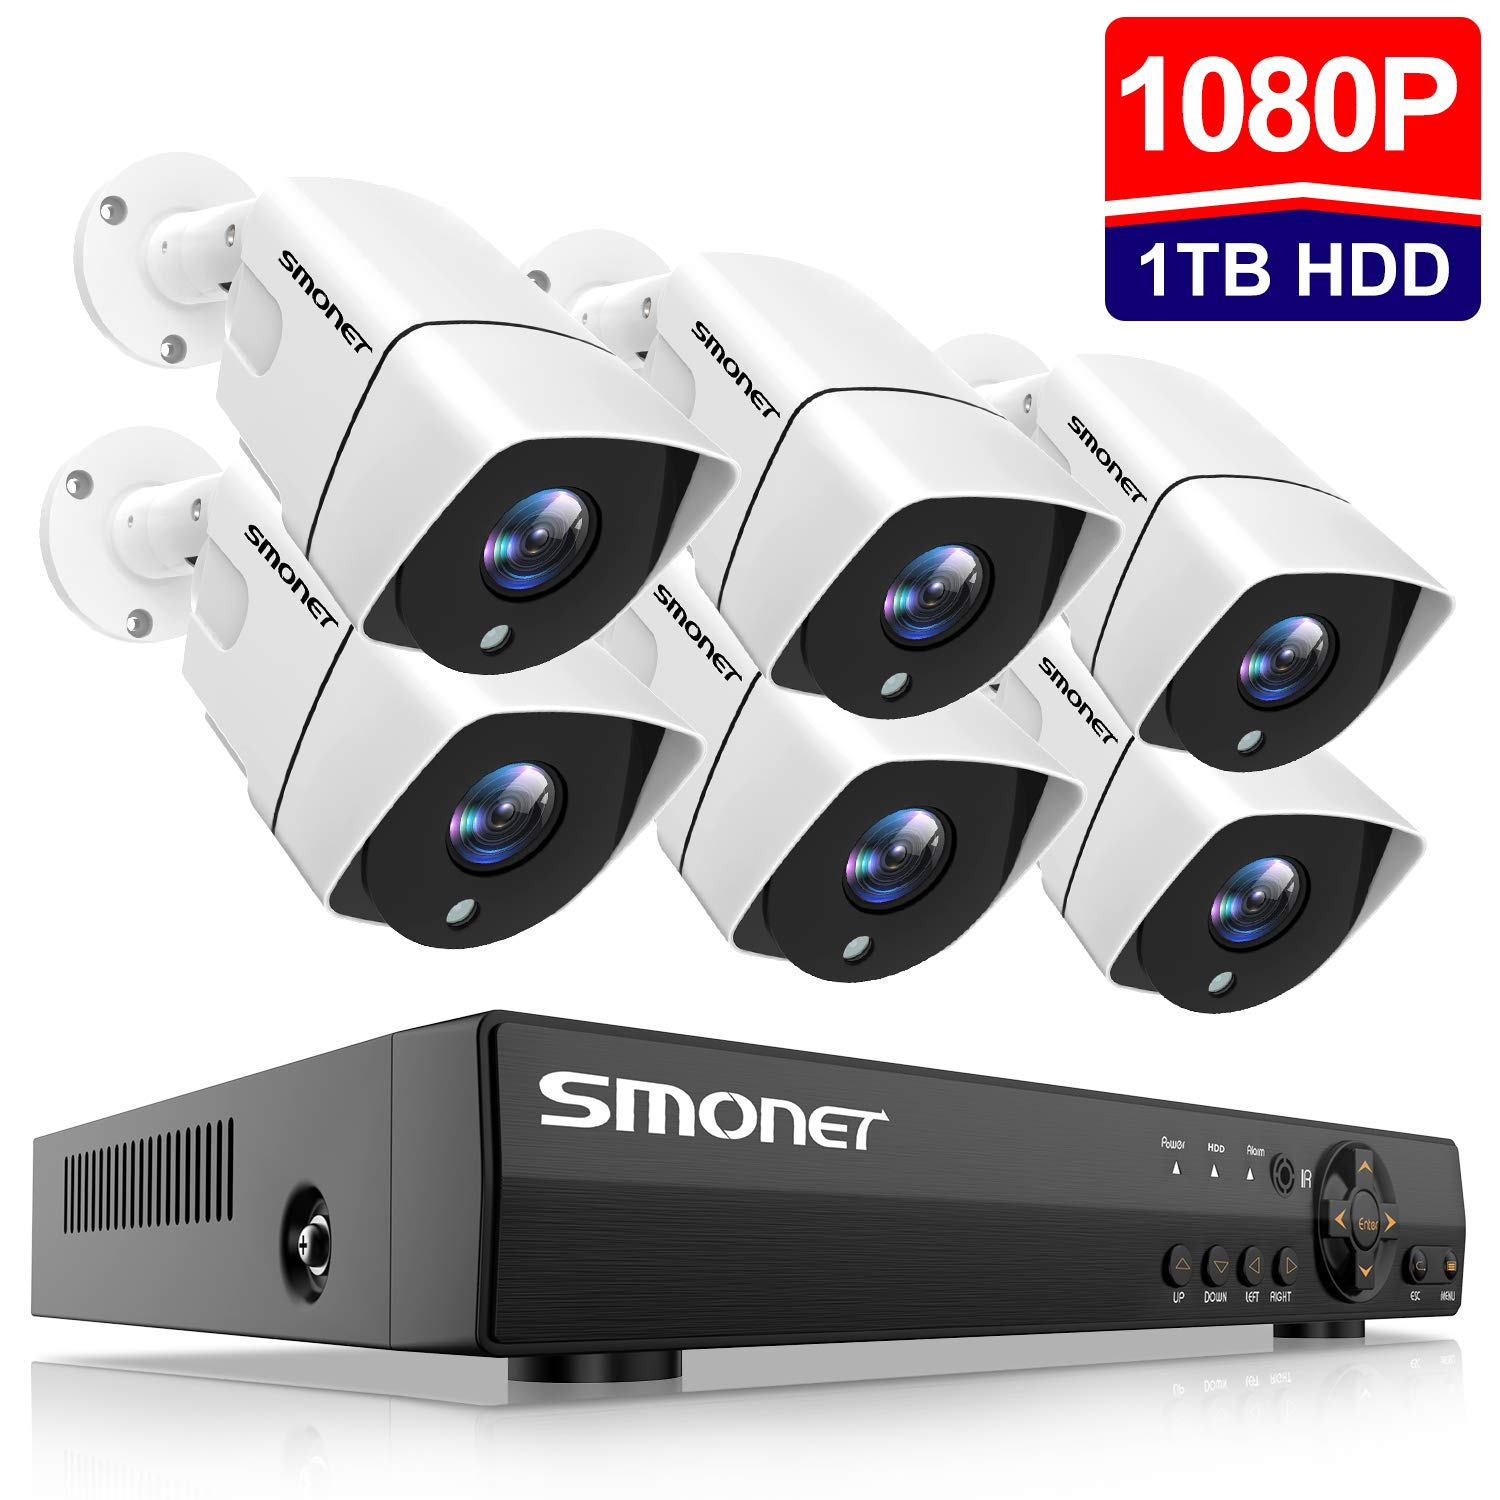 [Full HD] Security Camera System Outdoor,SMONET 8 Channel 1080P Home Security System(1TB Hard Drive),6pcs 2MP Weatherproof Security Cameras,65ft Night Vision,P2P, Remote View,Free APP by SMONET